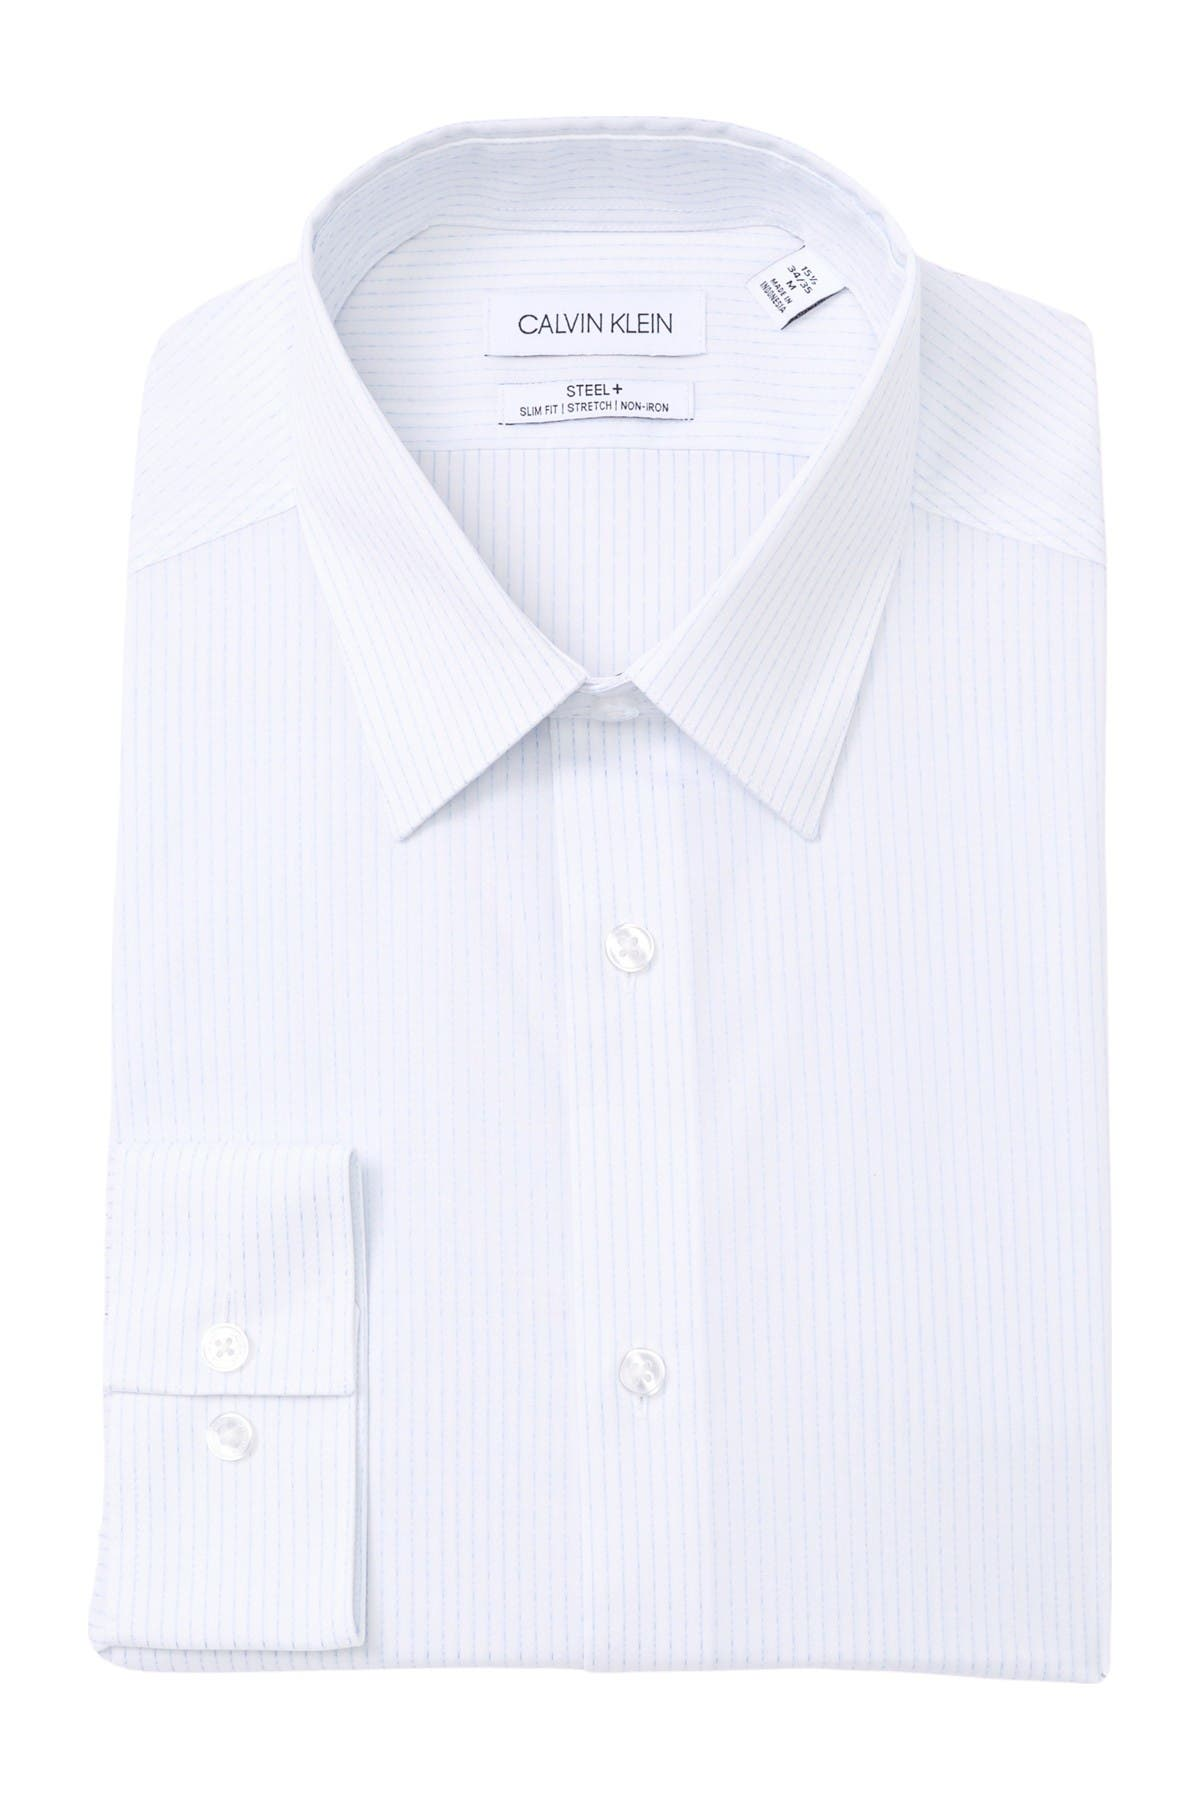 Image of Calvin Klein Steel+ Slim Fit Non-Iron Stretch Dress Shirt